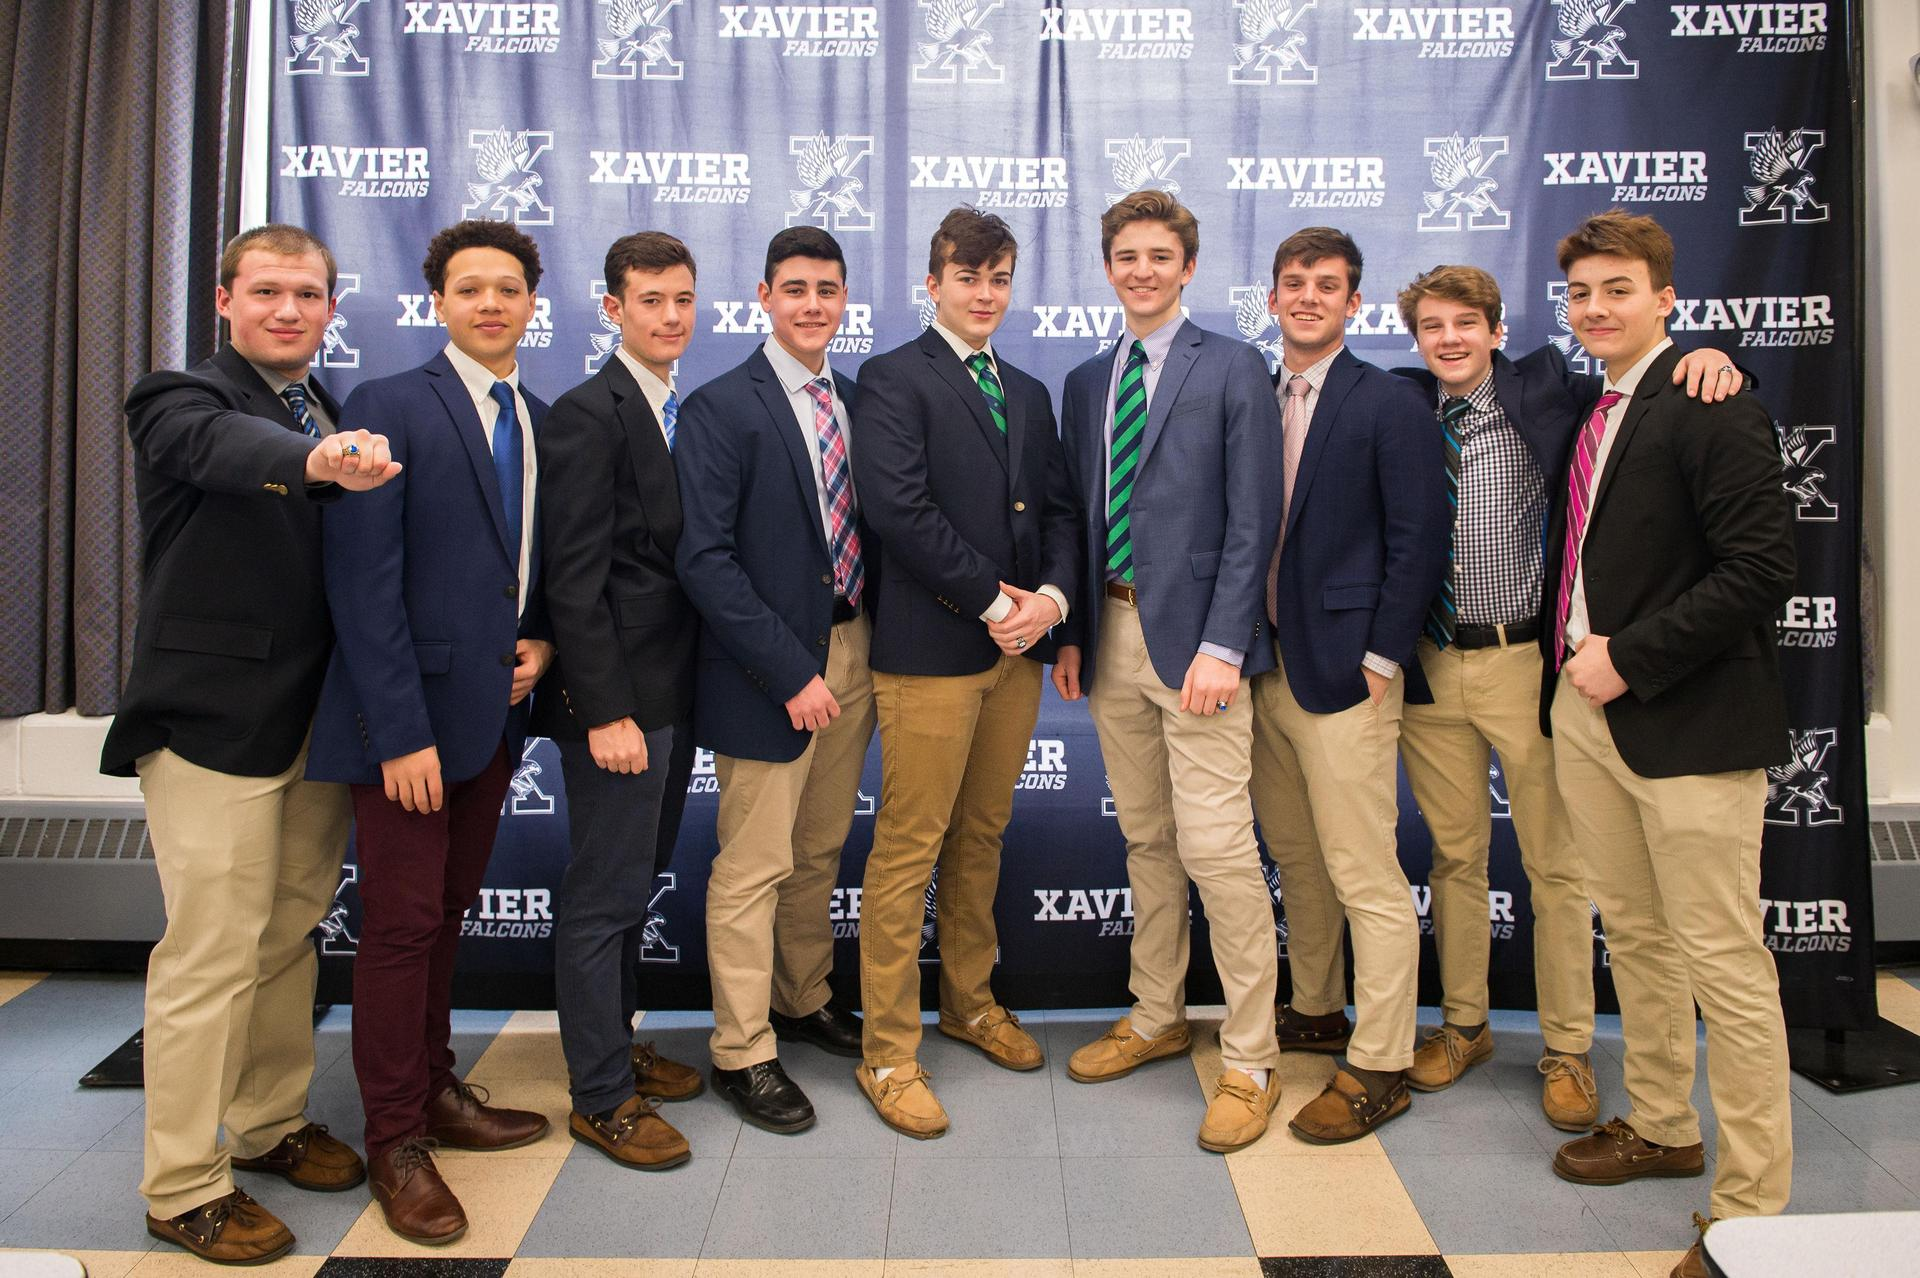 Xavier Students at Annual Ring Mass